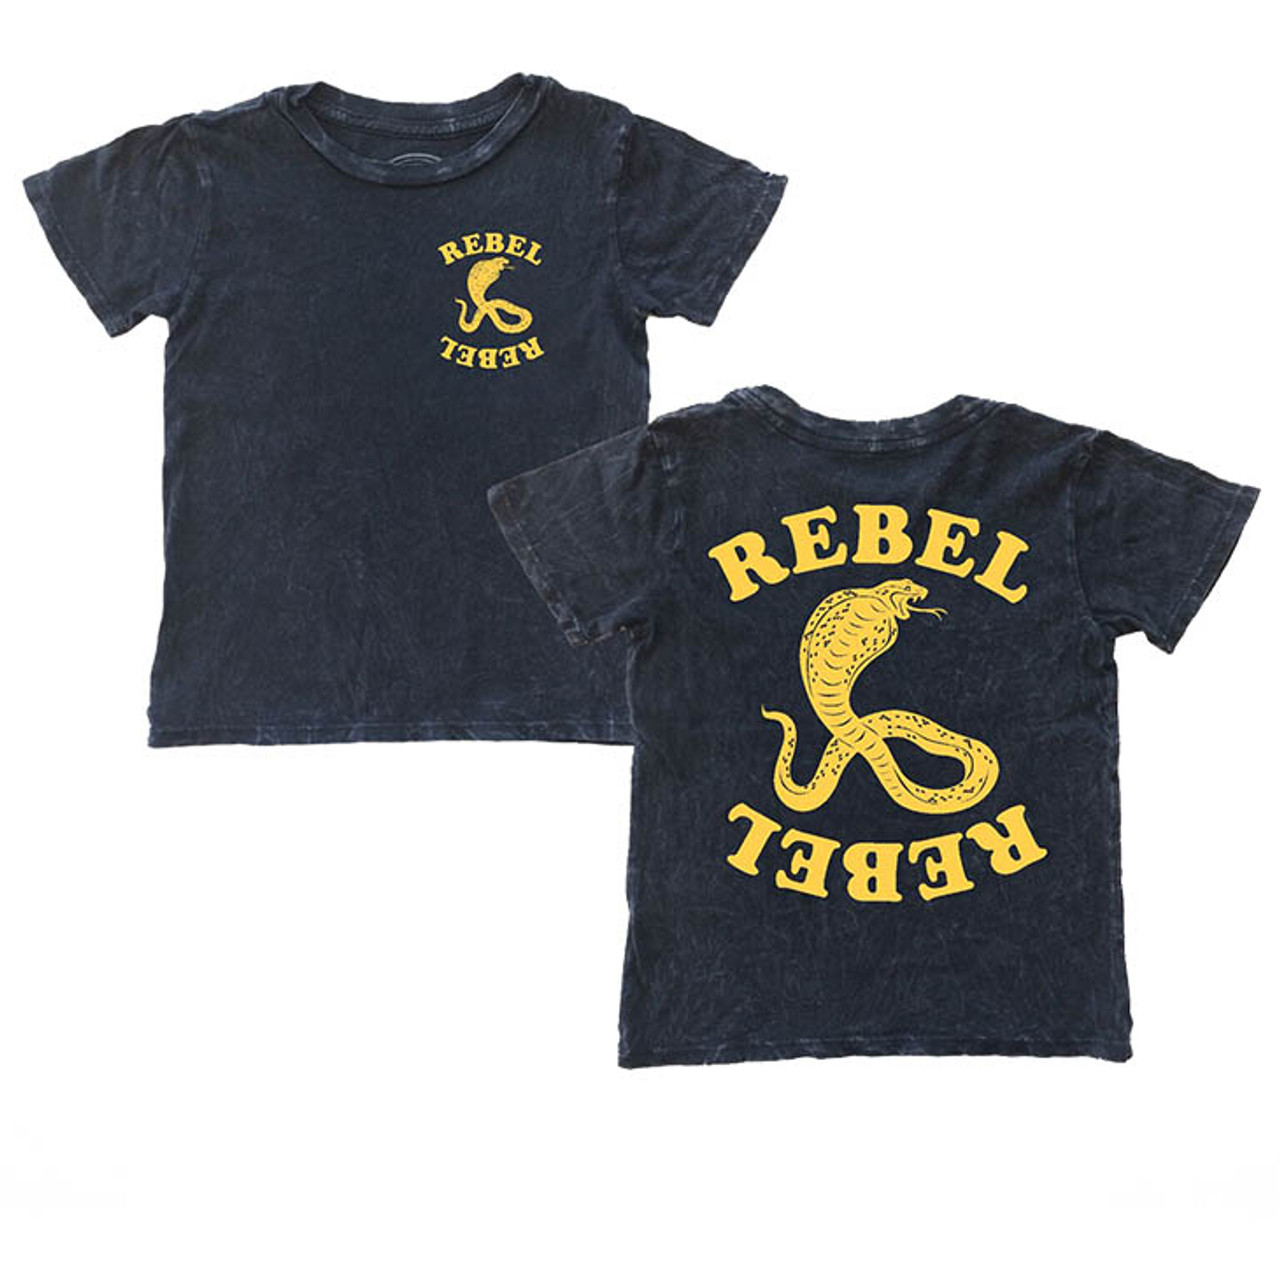 Rebel Rebel Tee Spearmint Ventures Llc